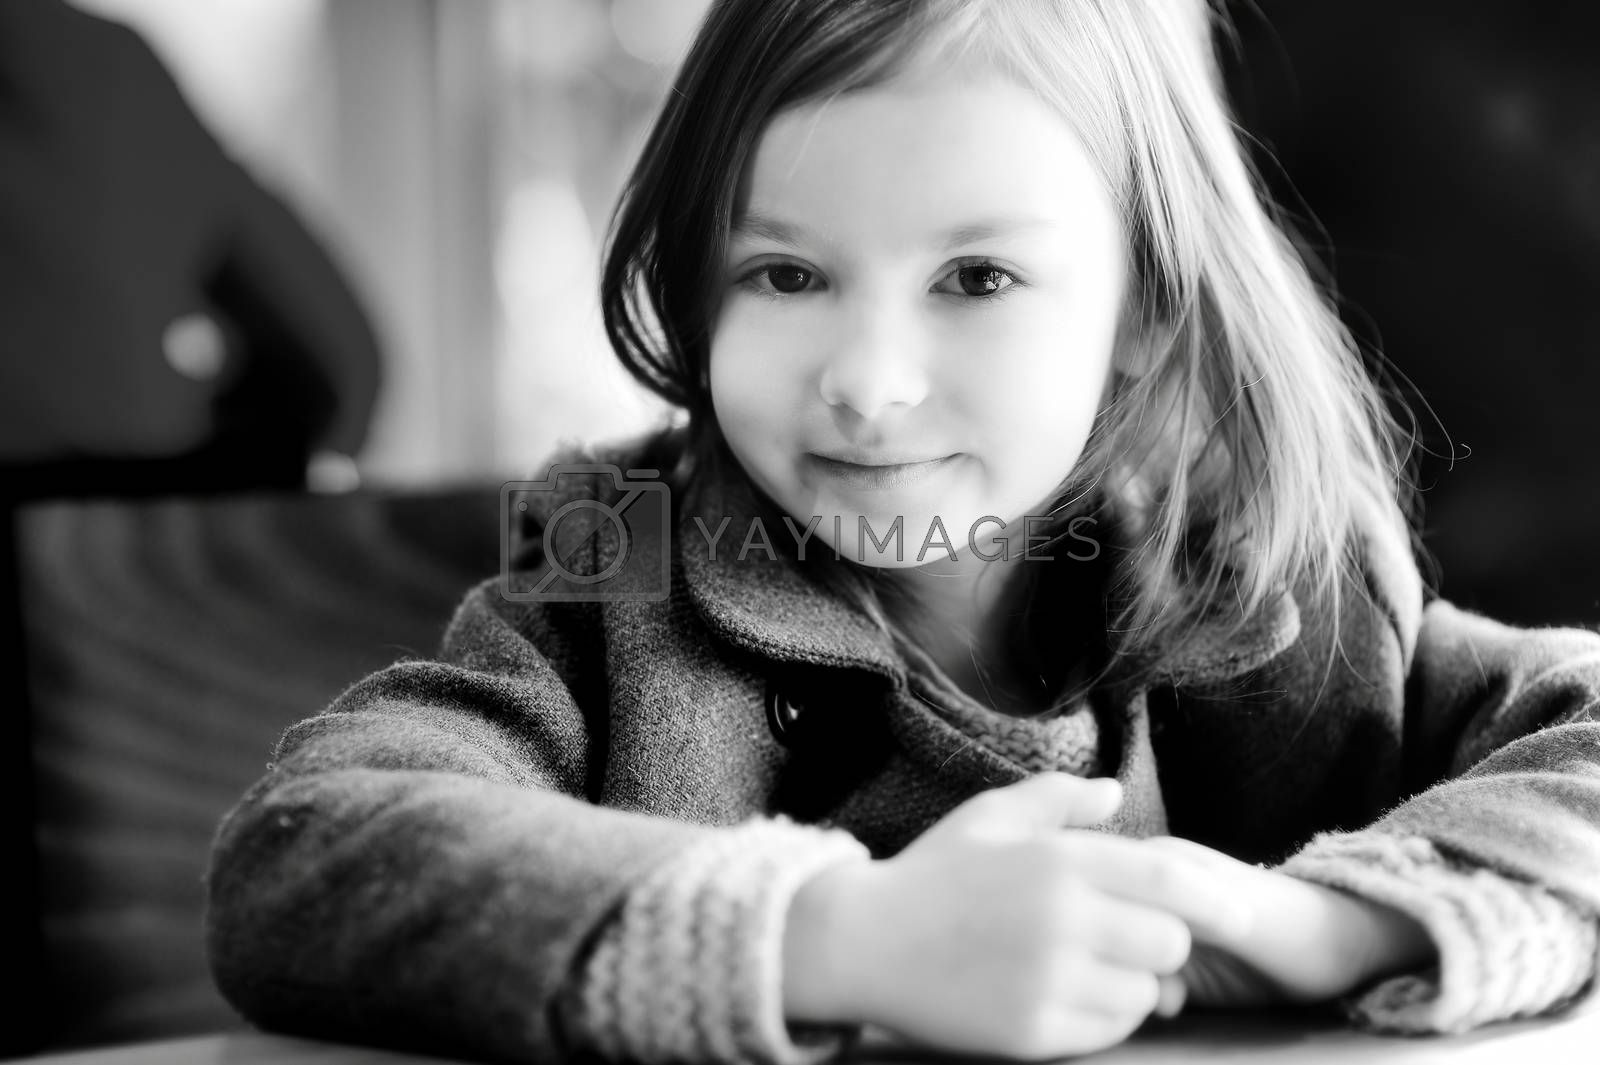 Black and white portrait of a beautiful little girl outdoors